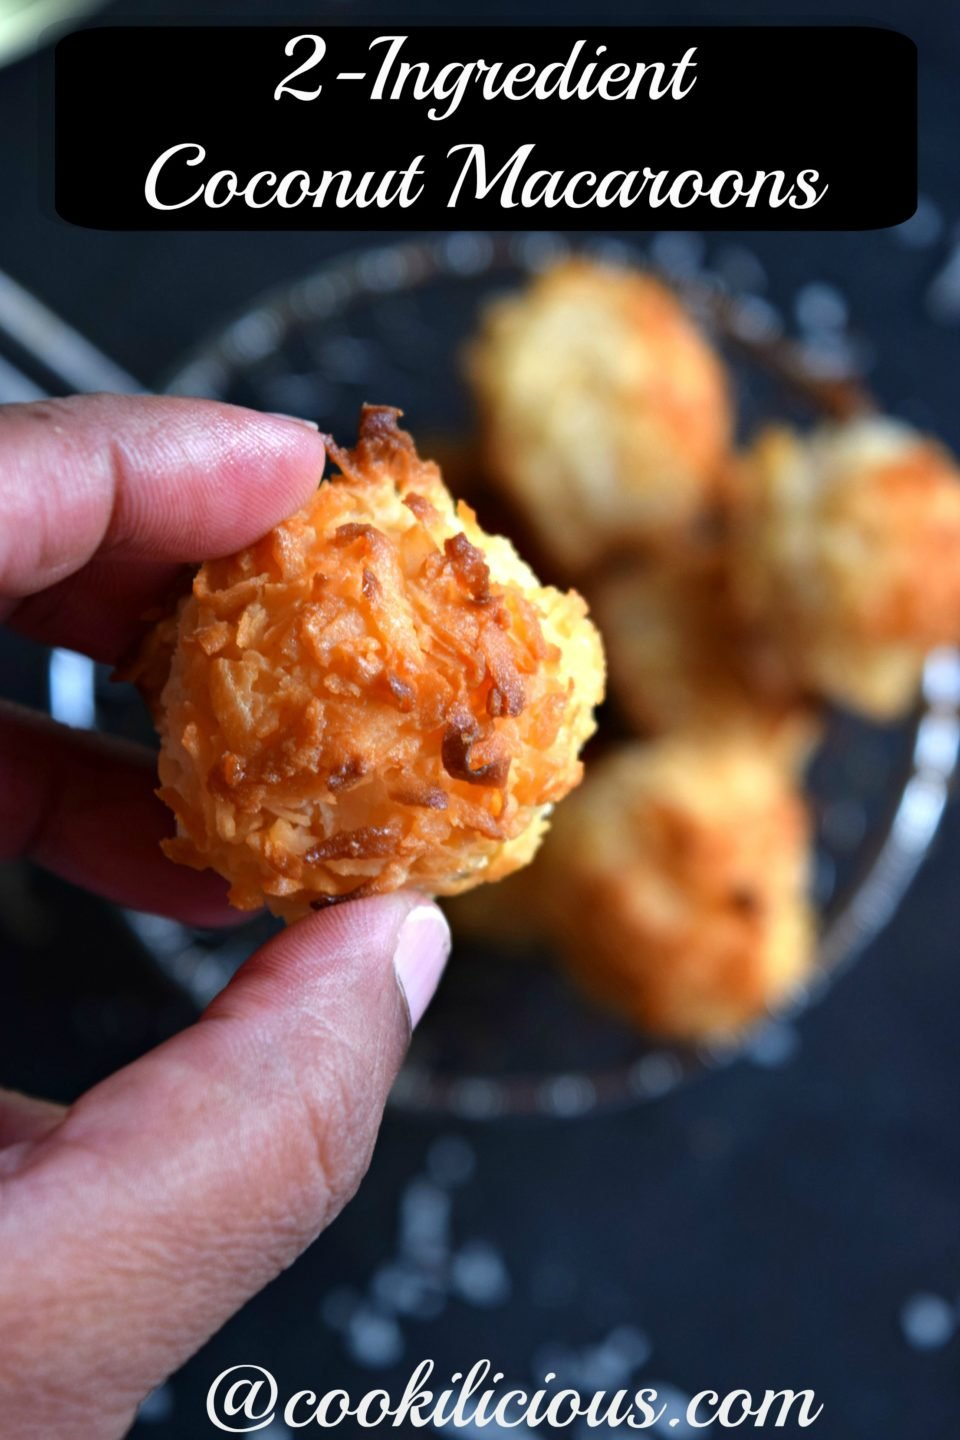 2-Ingredient Coconut Macaroons - Holiday Dessert Recipe!Desserts